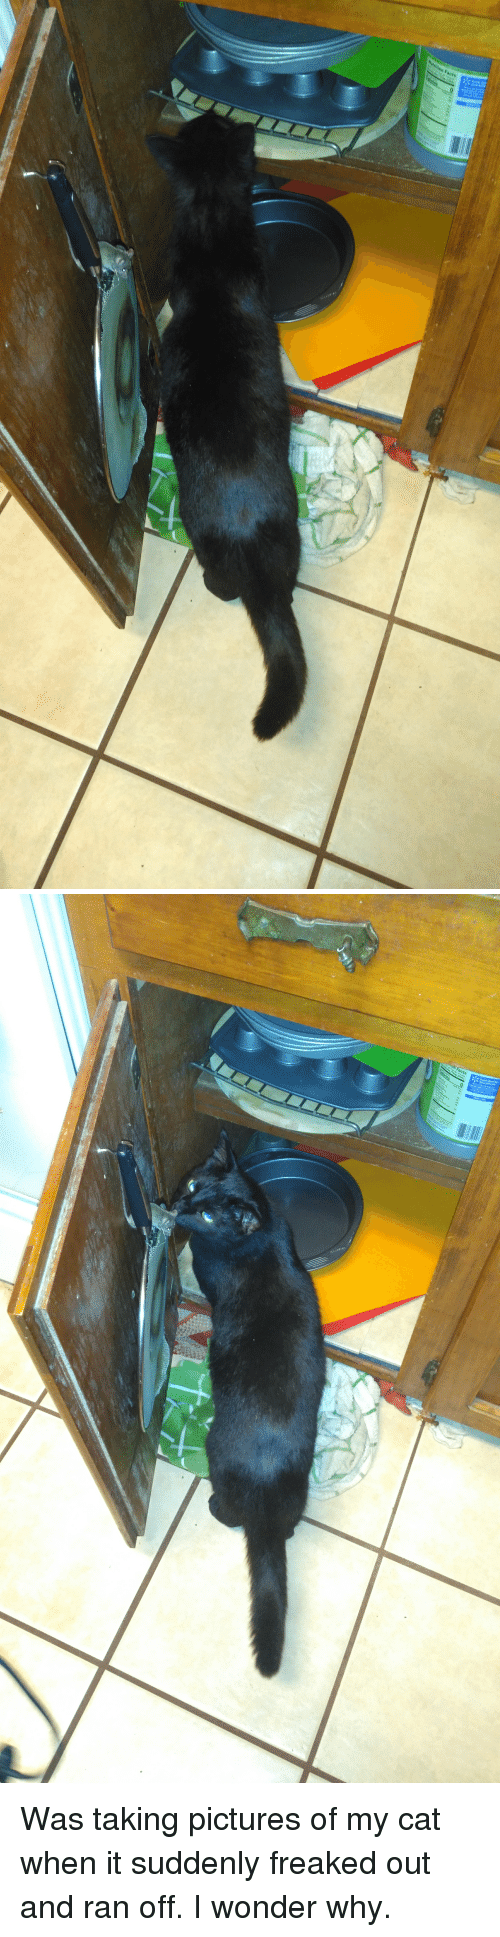 Mouse, Pictures, and Wonder: Was taking pictures of my cat when it suddenly freaked out and ran off. I wonder why.